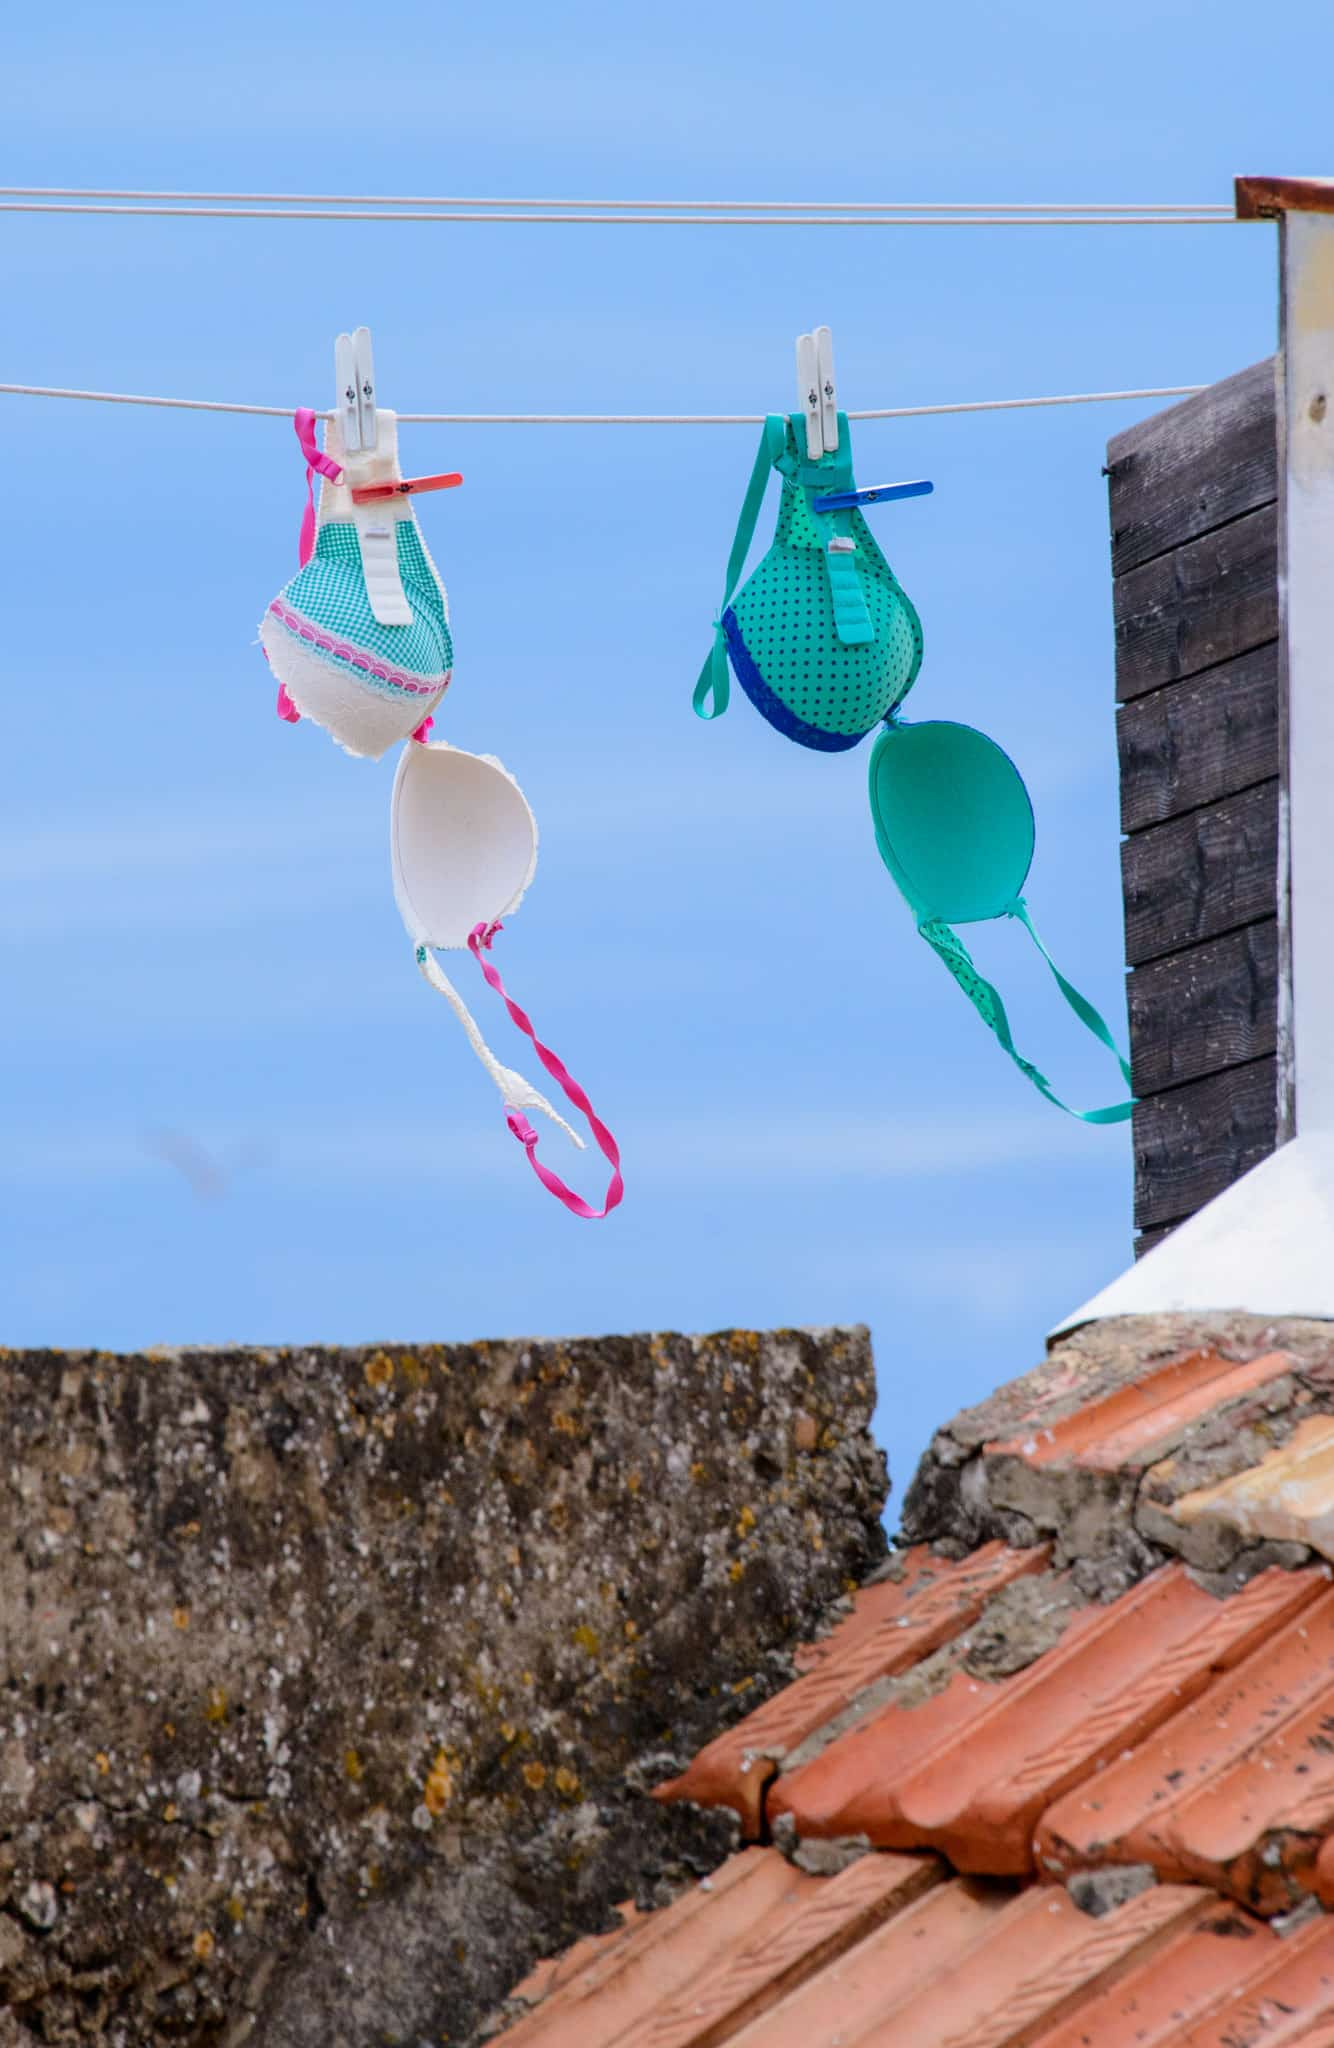 A little bit of laundry blowing in the breeze in Dubrovnik's Old City in Croatia.